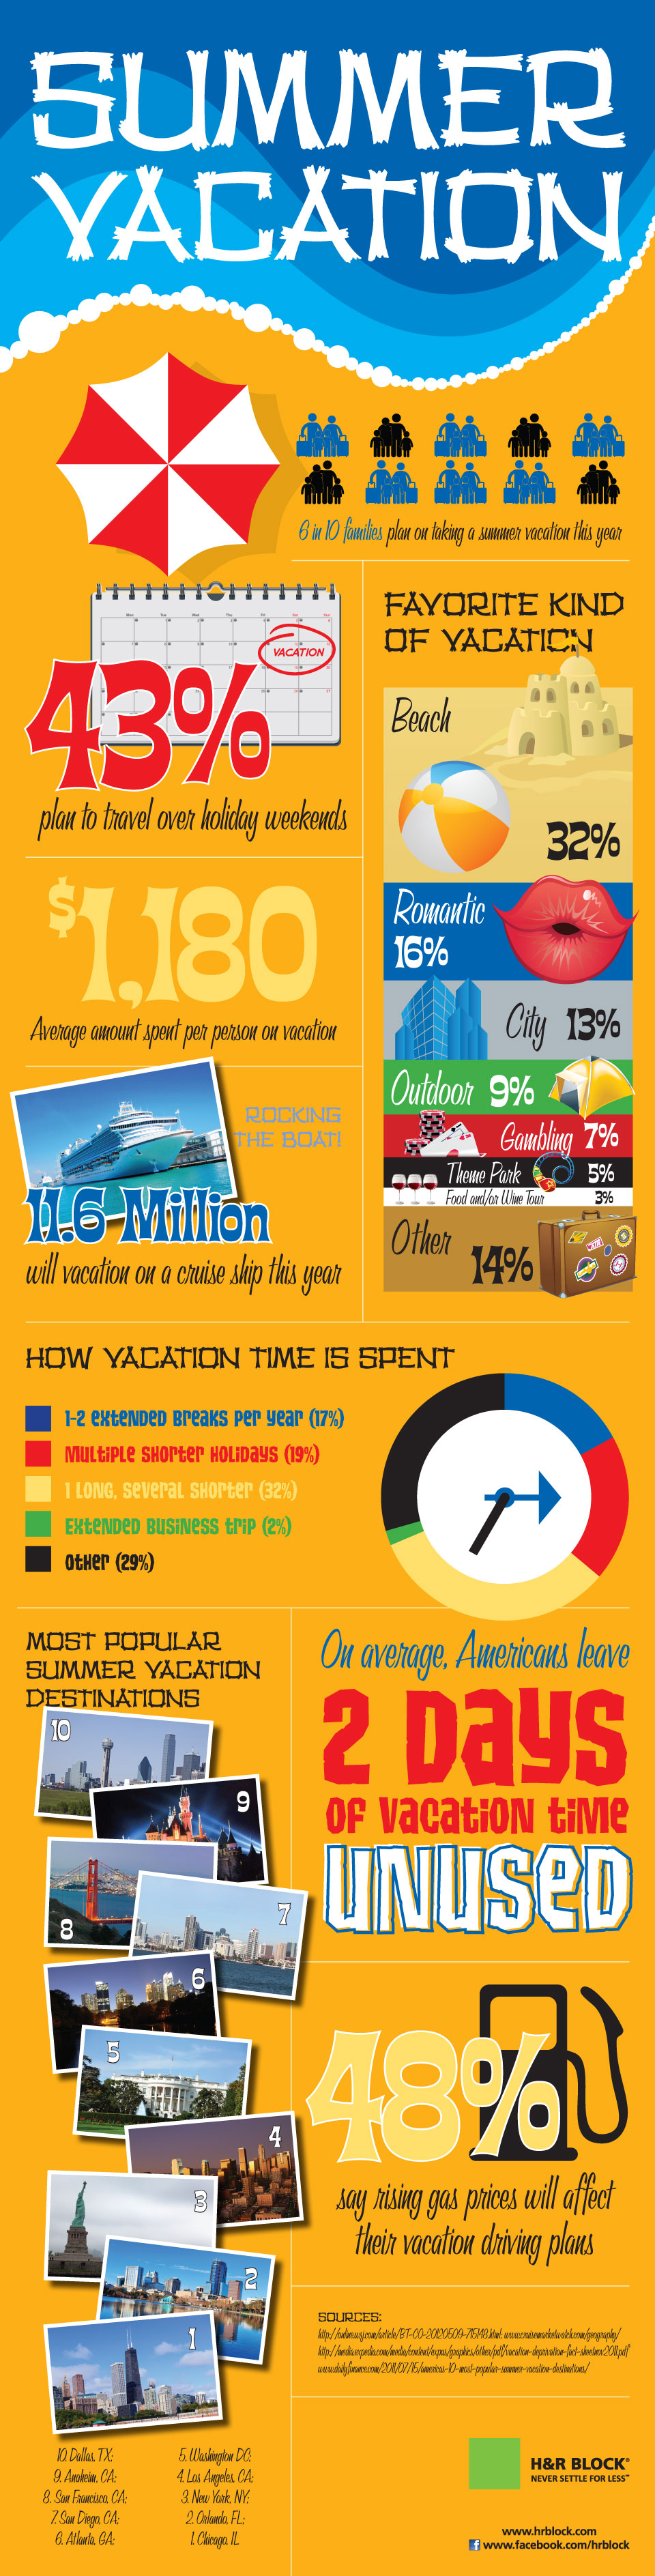 Summer Vacation Infographic